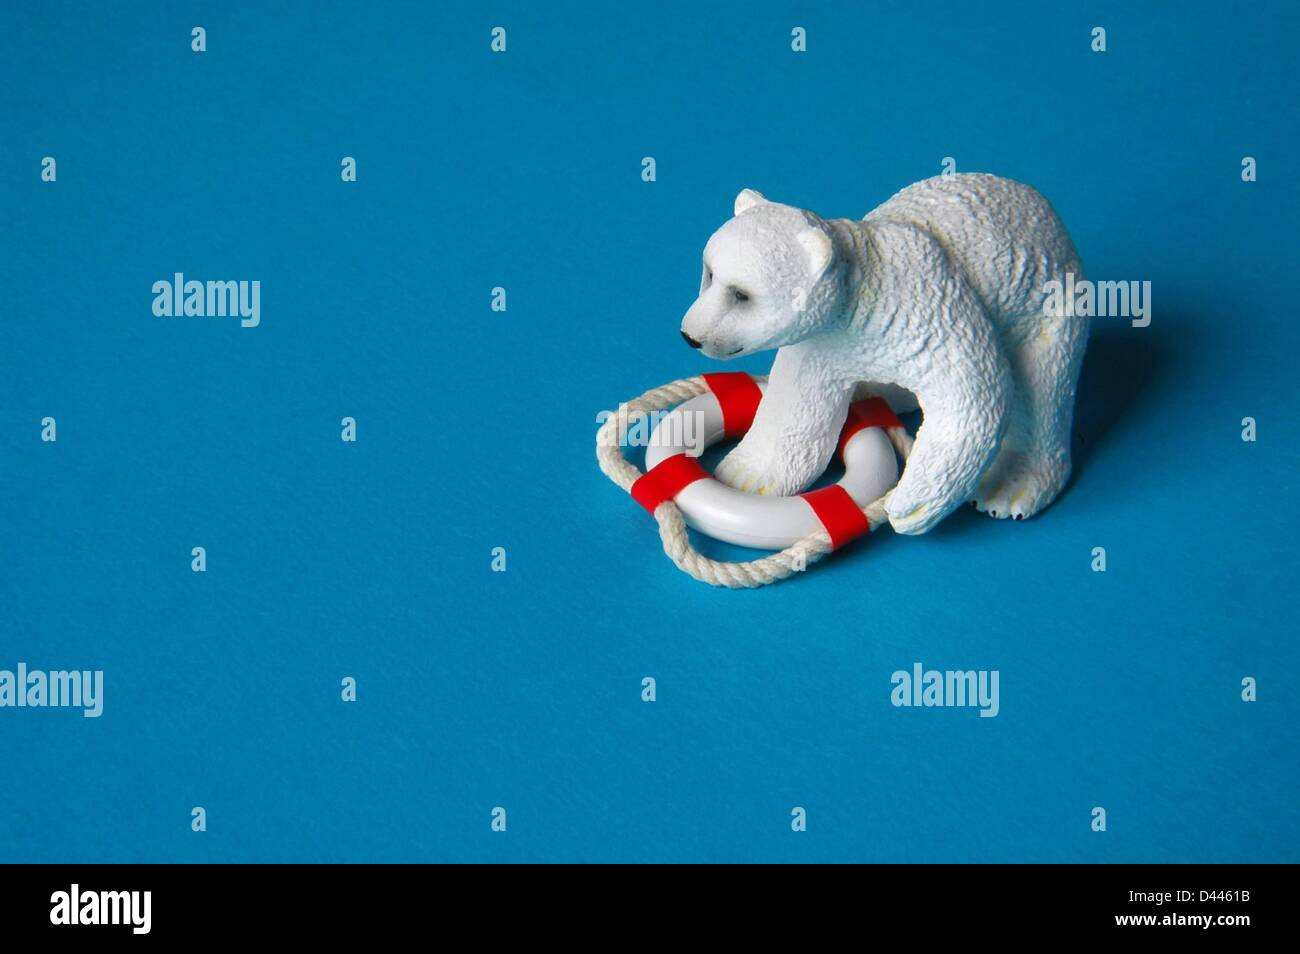 Illustration - A miniature polar bear is pictured with one of his paws inside of a safety buoy in Berlin, Germany, 25 December 2007. Photo: Berliner Verlag/S.Steinach Stock Photo